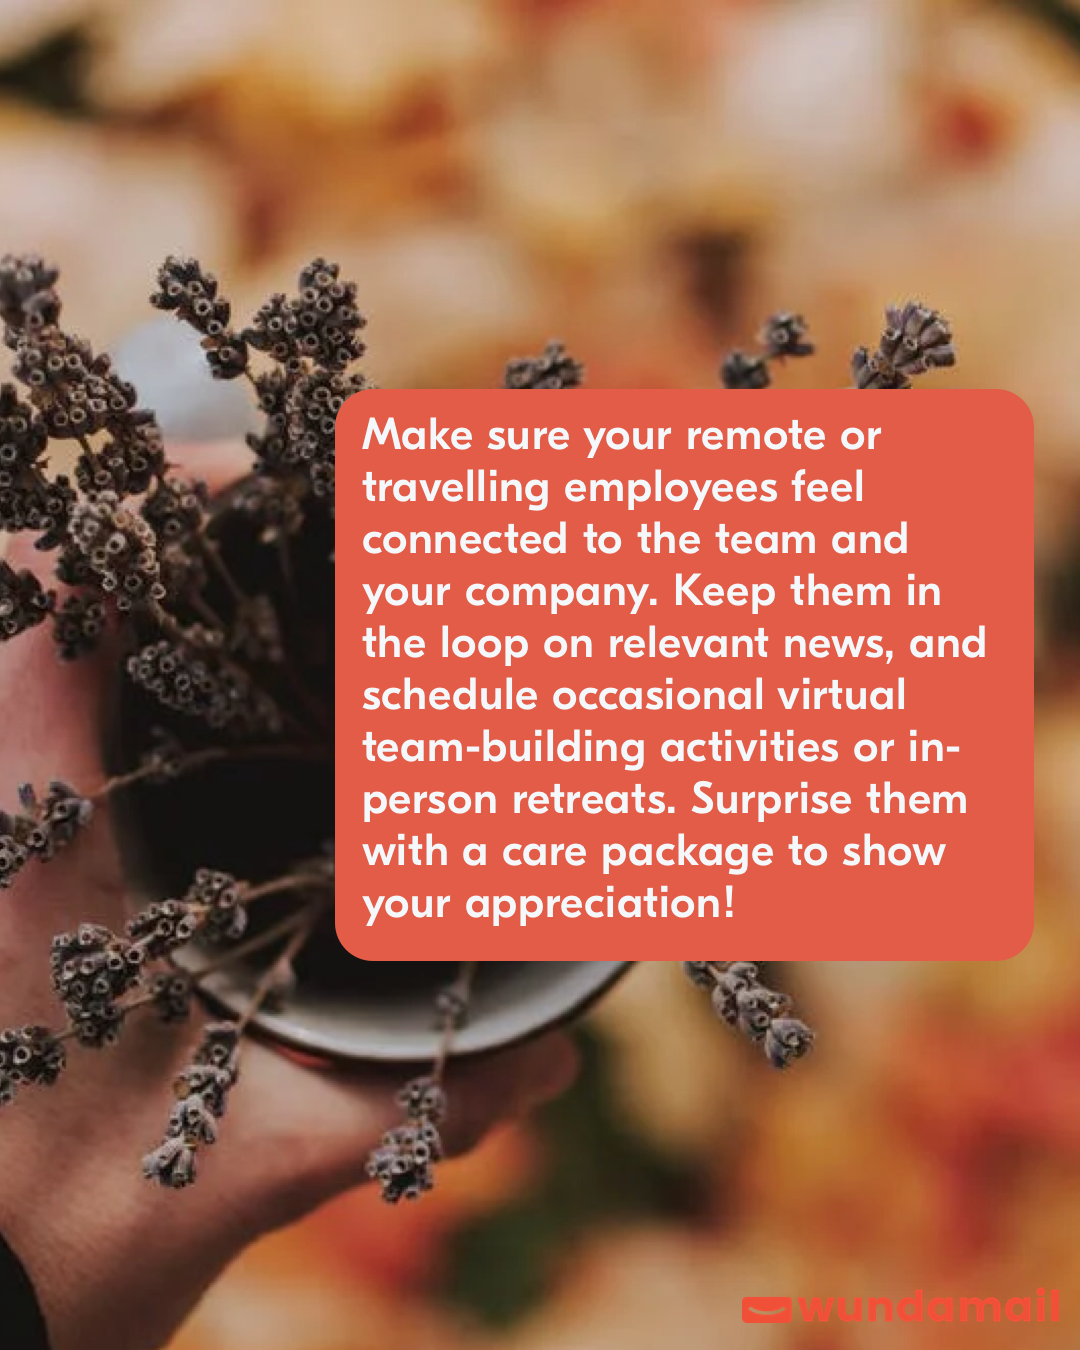 Make sure your remote or travelling employees feel connected to the team and your company.